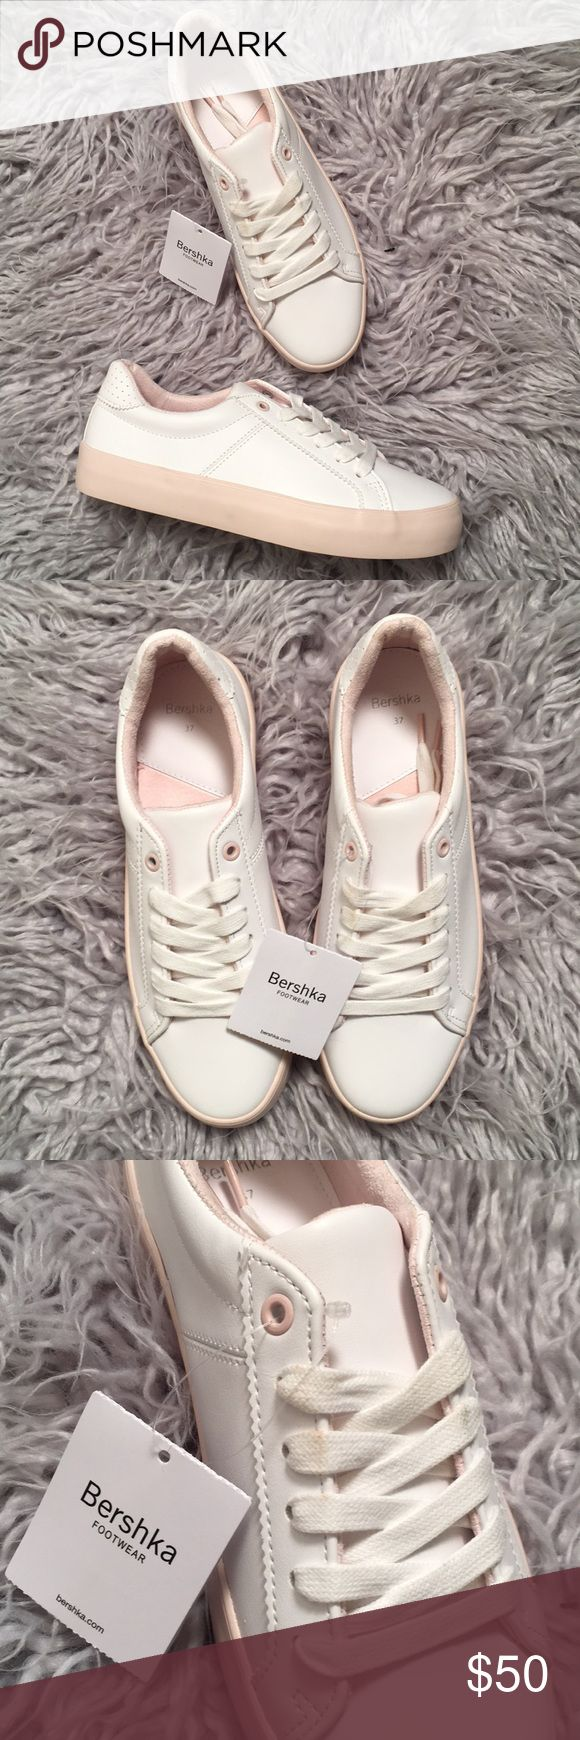 Bershka White Sneakers 37 NWT faux leather with light pink trimming. Laces are a bit dirty but can easily be washed. Adorable everyday sneakers you can wear with anything, even dresses for the spring and summer seasons! Bershka Shoes Sneakers